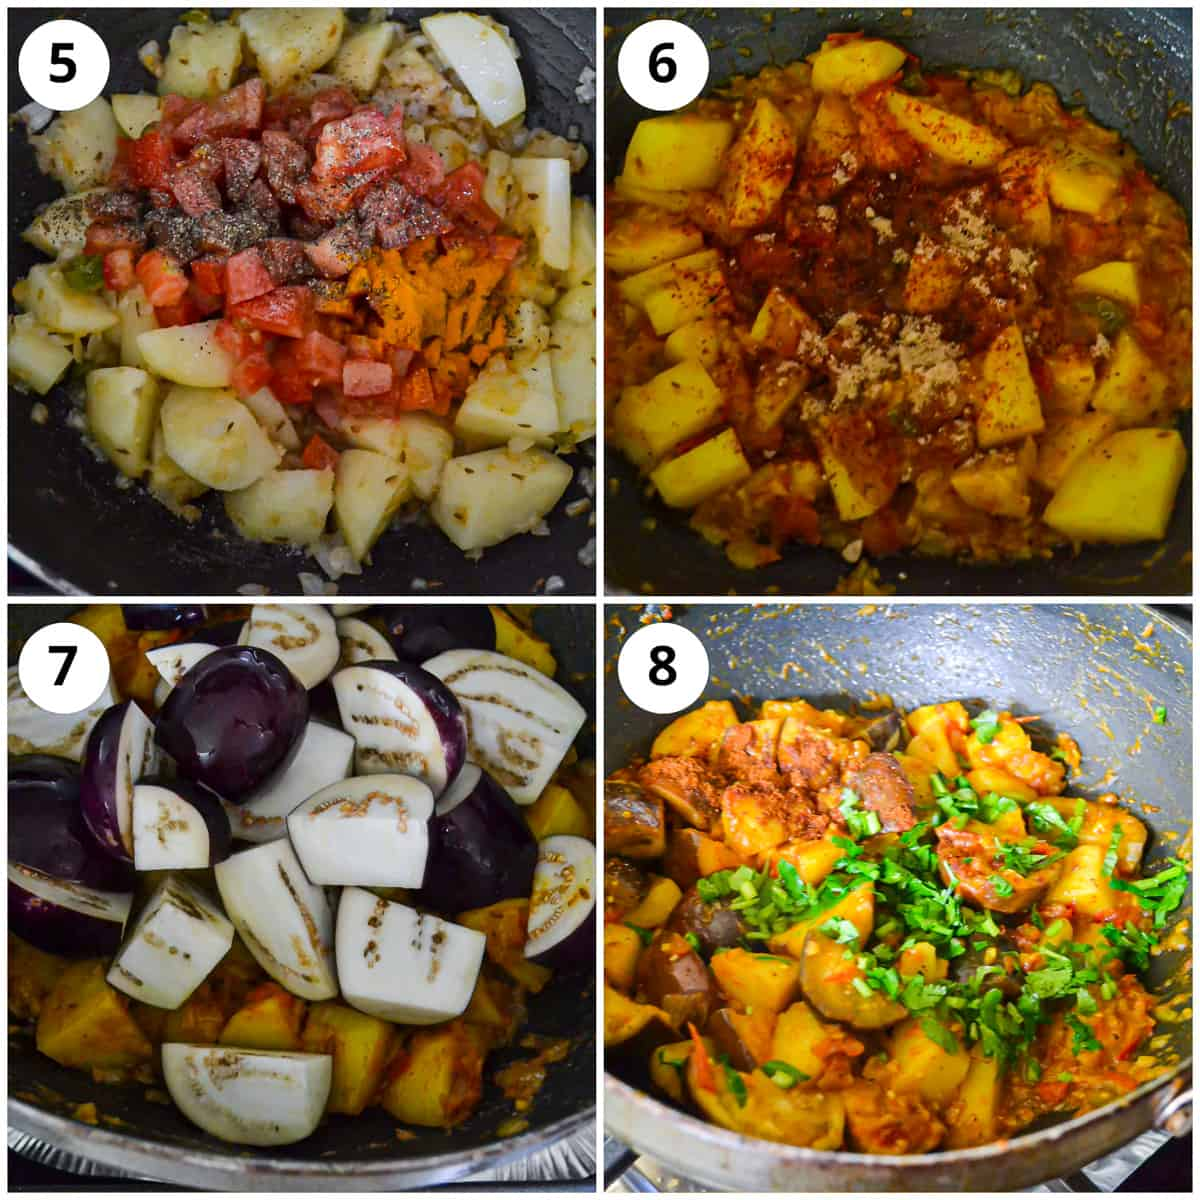 Step by step photos showing adding the eggplant, spices and and the finished dish